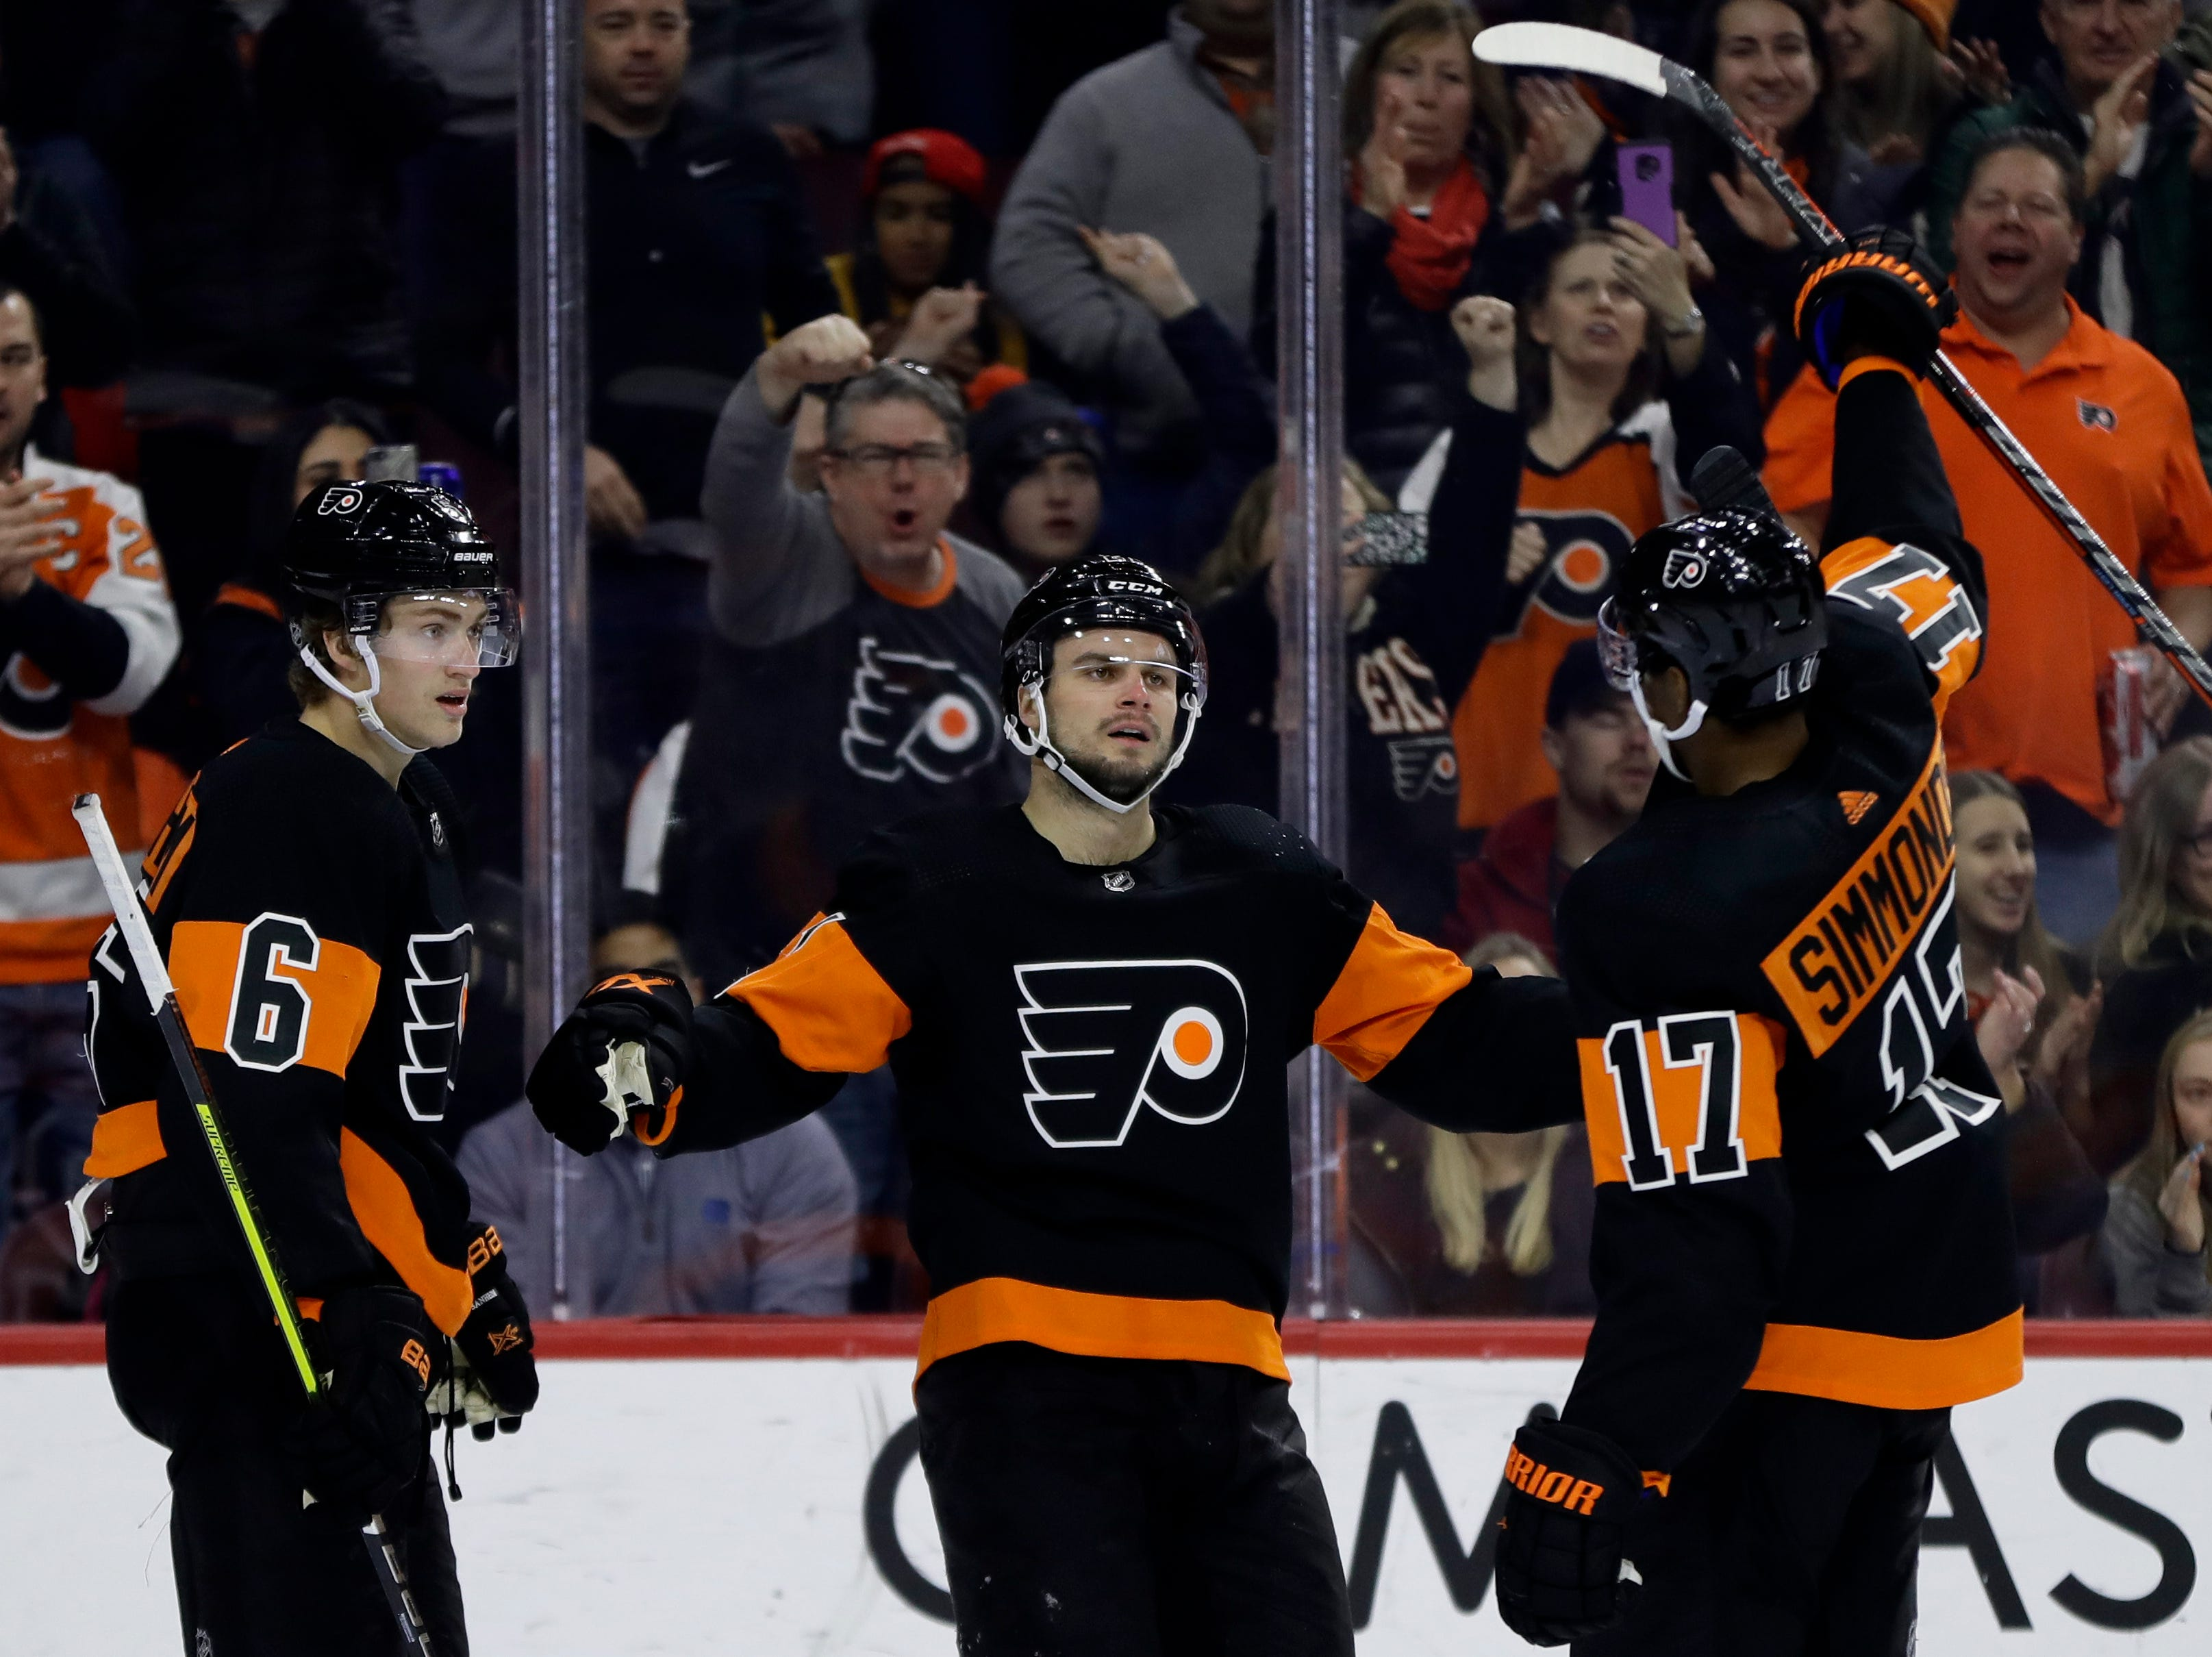 Philadelphia Flyers' Travis Sanheim (6), Scott Laughton (21) and Wayne Simmonds (17) celebrate after Laughton's goal during the second period of an NHL hockey game against the Detroit Red Wings, Saturday, Feb. 16, 2019, in Philadelphia. (AP Photo/Matt Slocum)